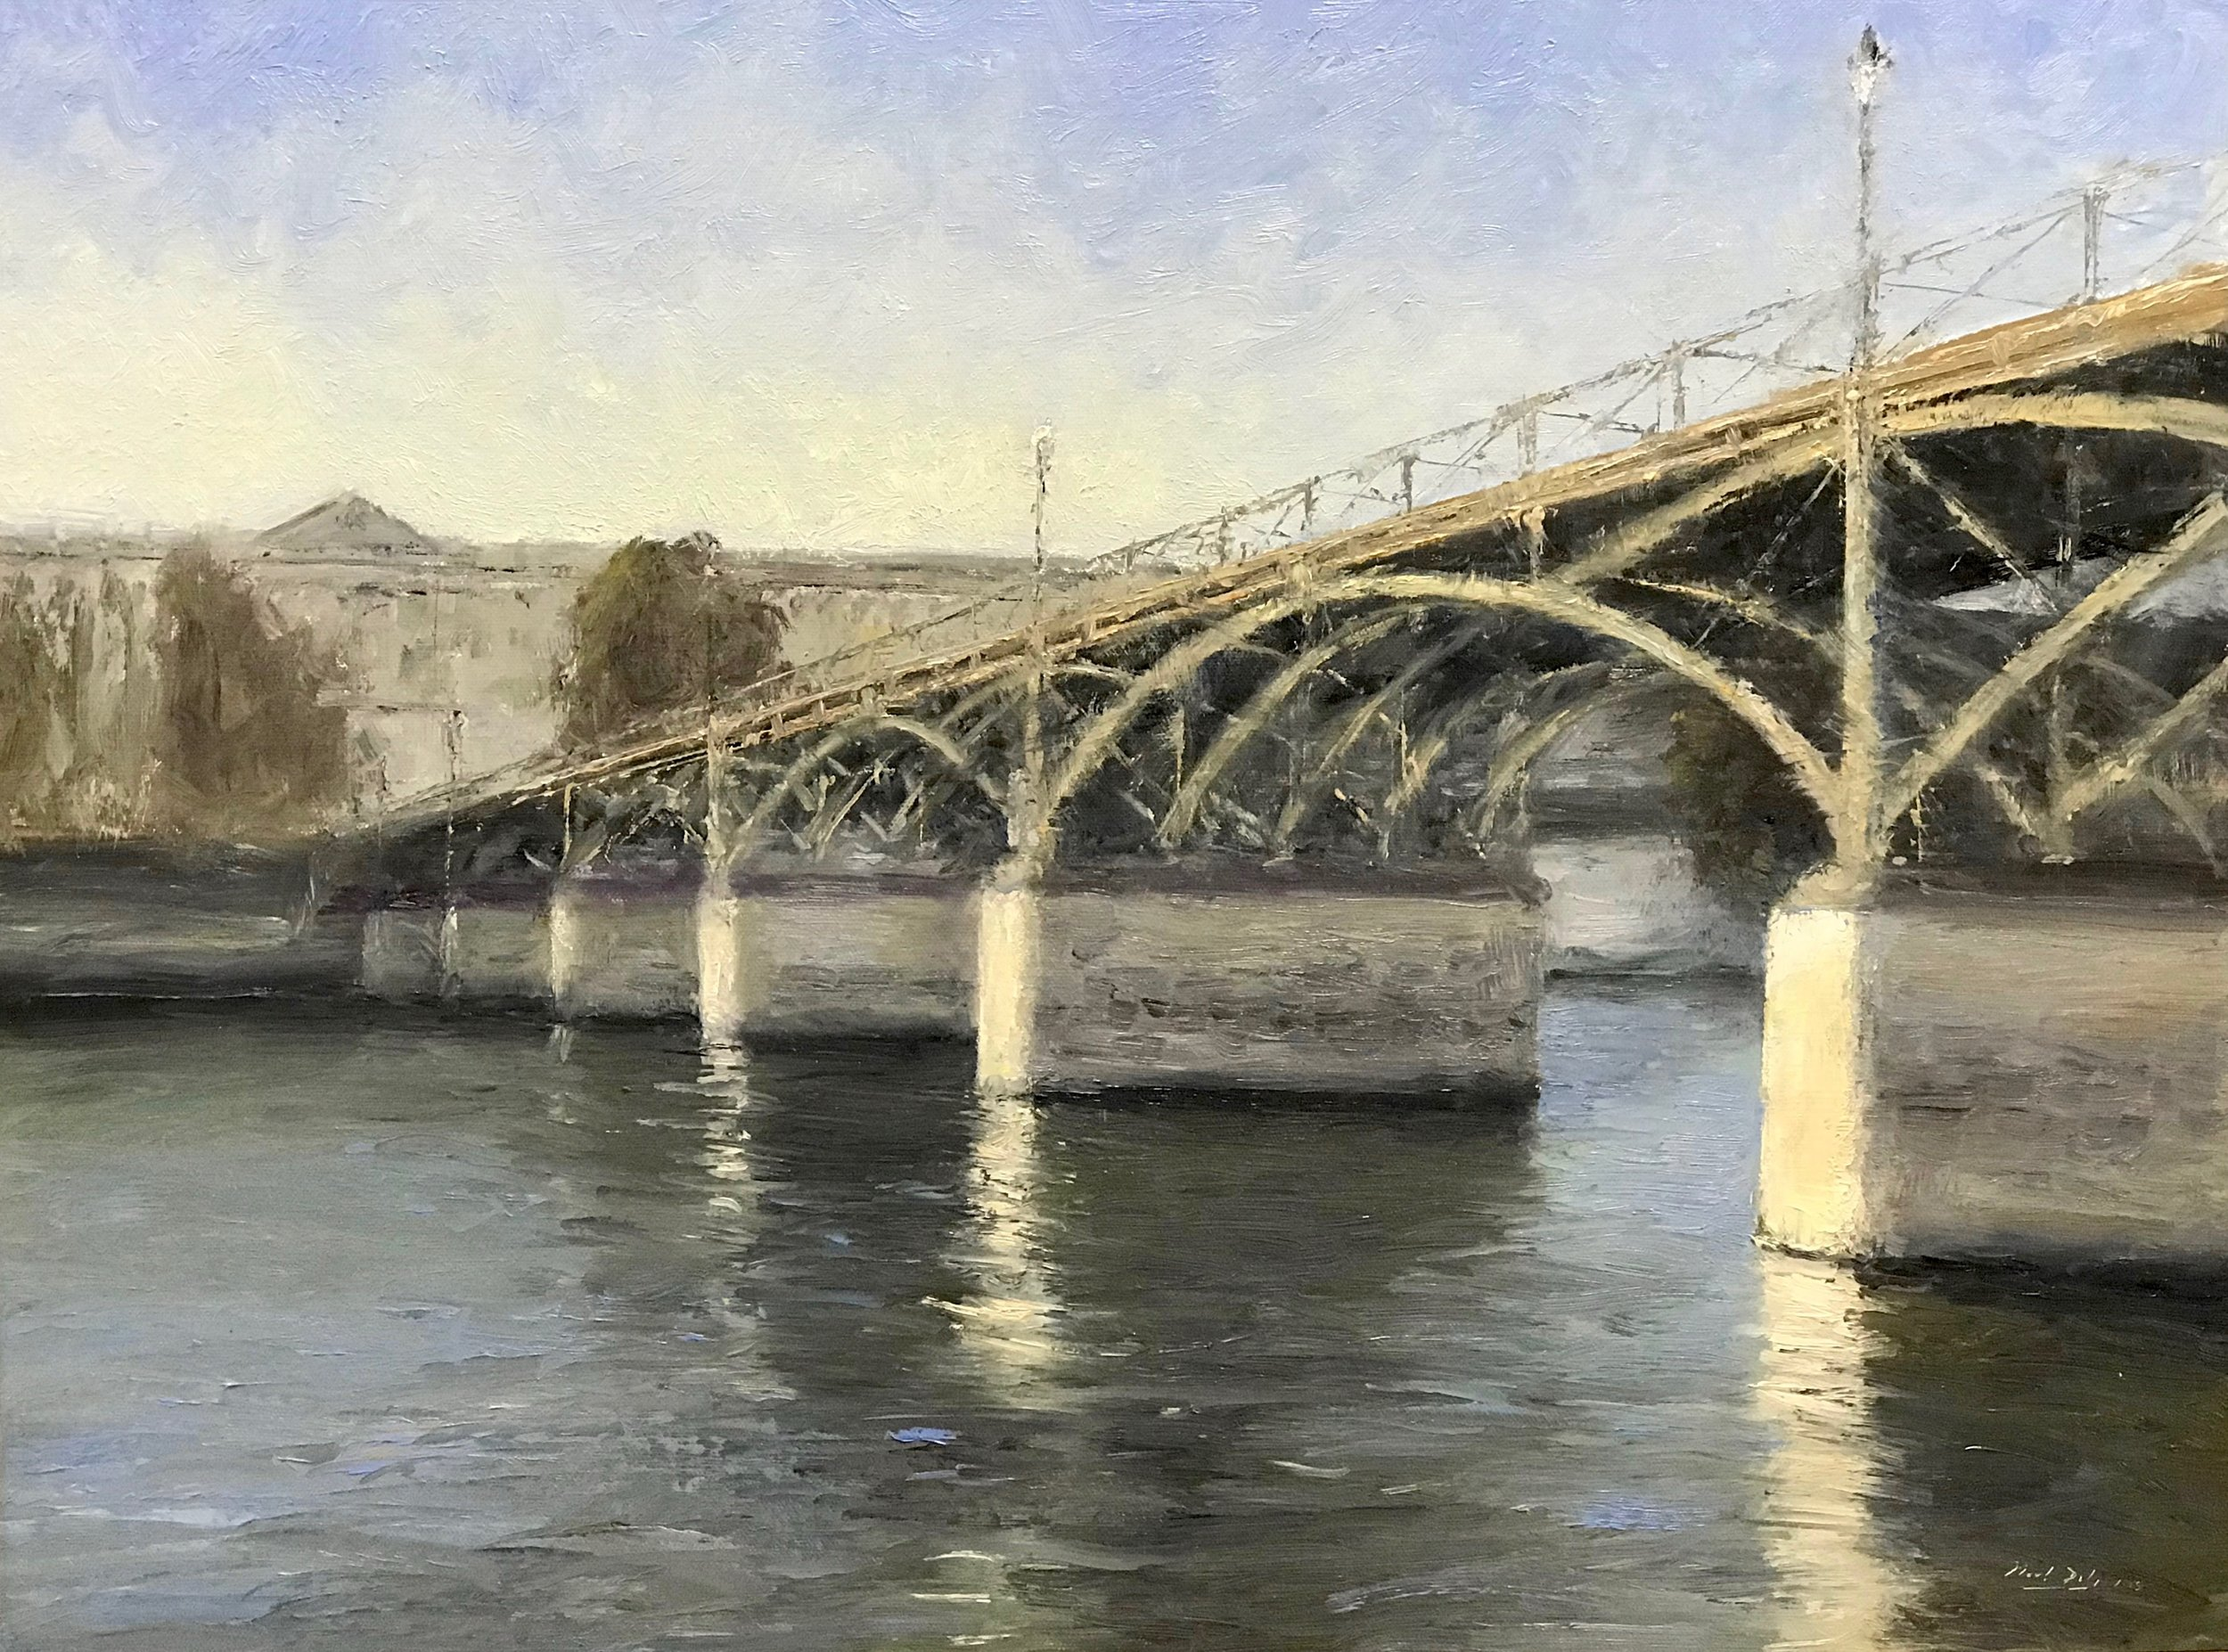 Pont des Arts, oil, 18 x 24, SLR by Mark Daly